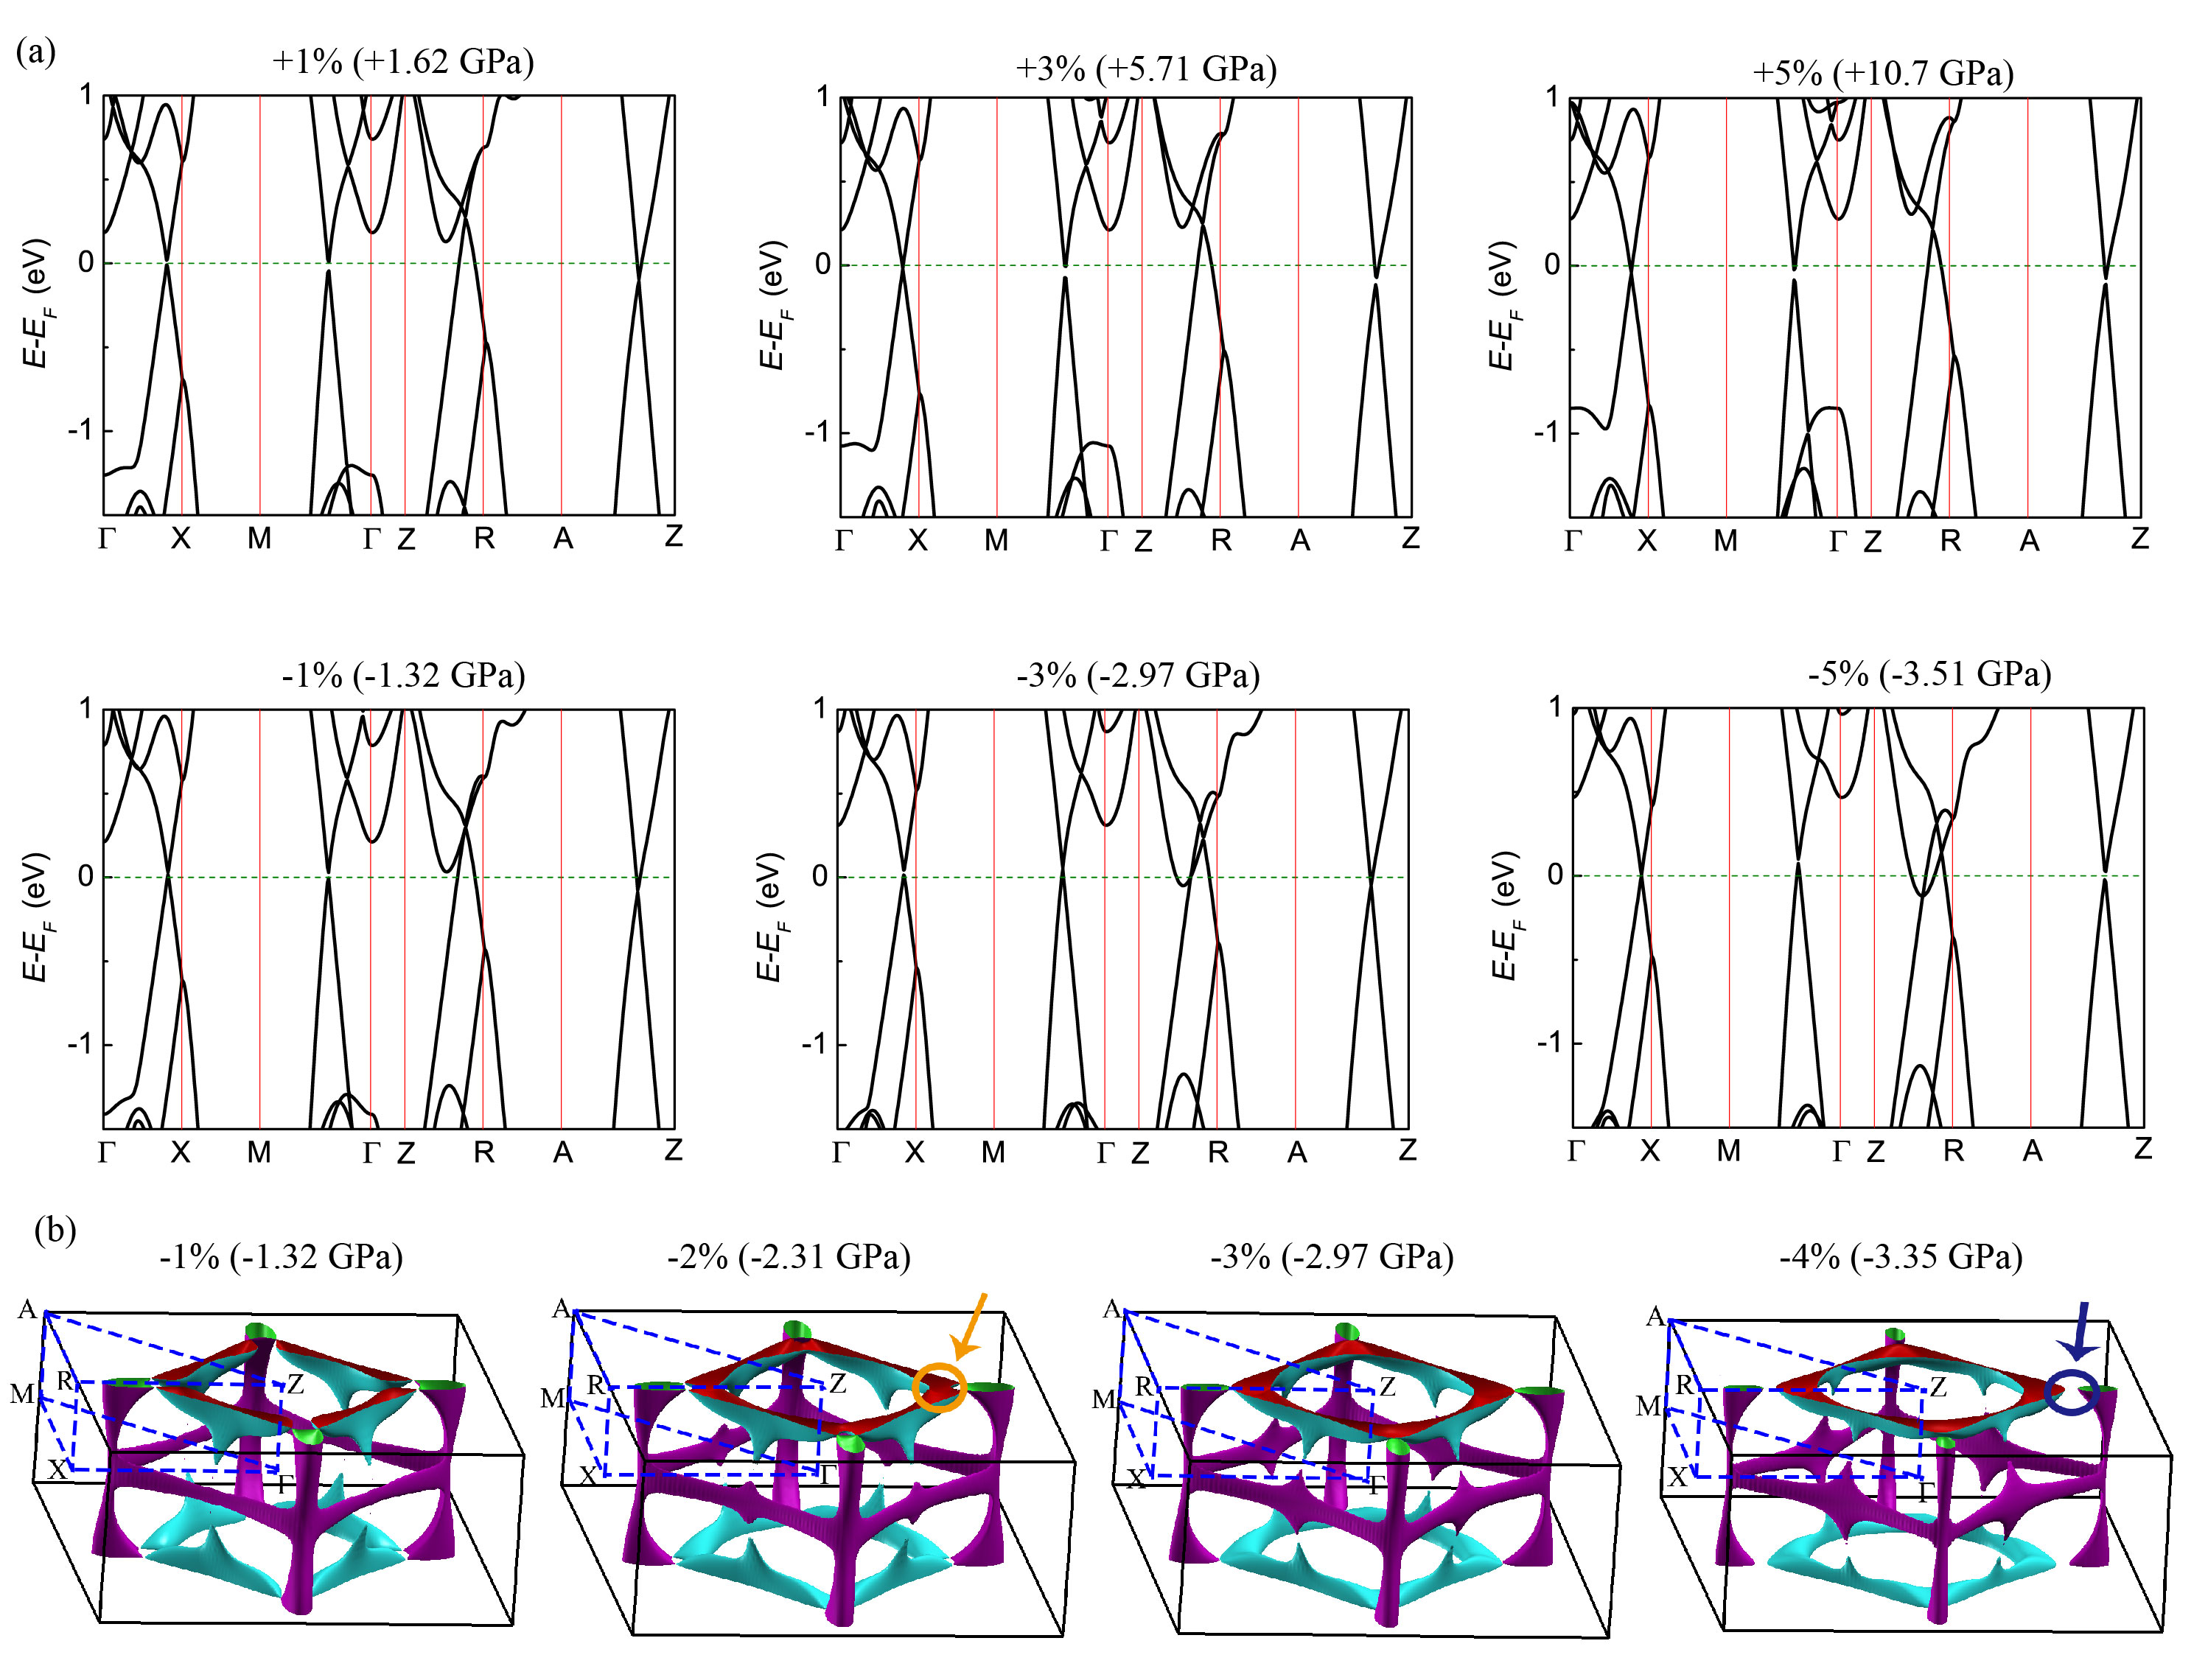 (a) Band structures calculated in the vicinity of the Fermi energy for different values of the uniaxial strain